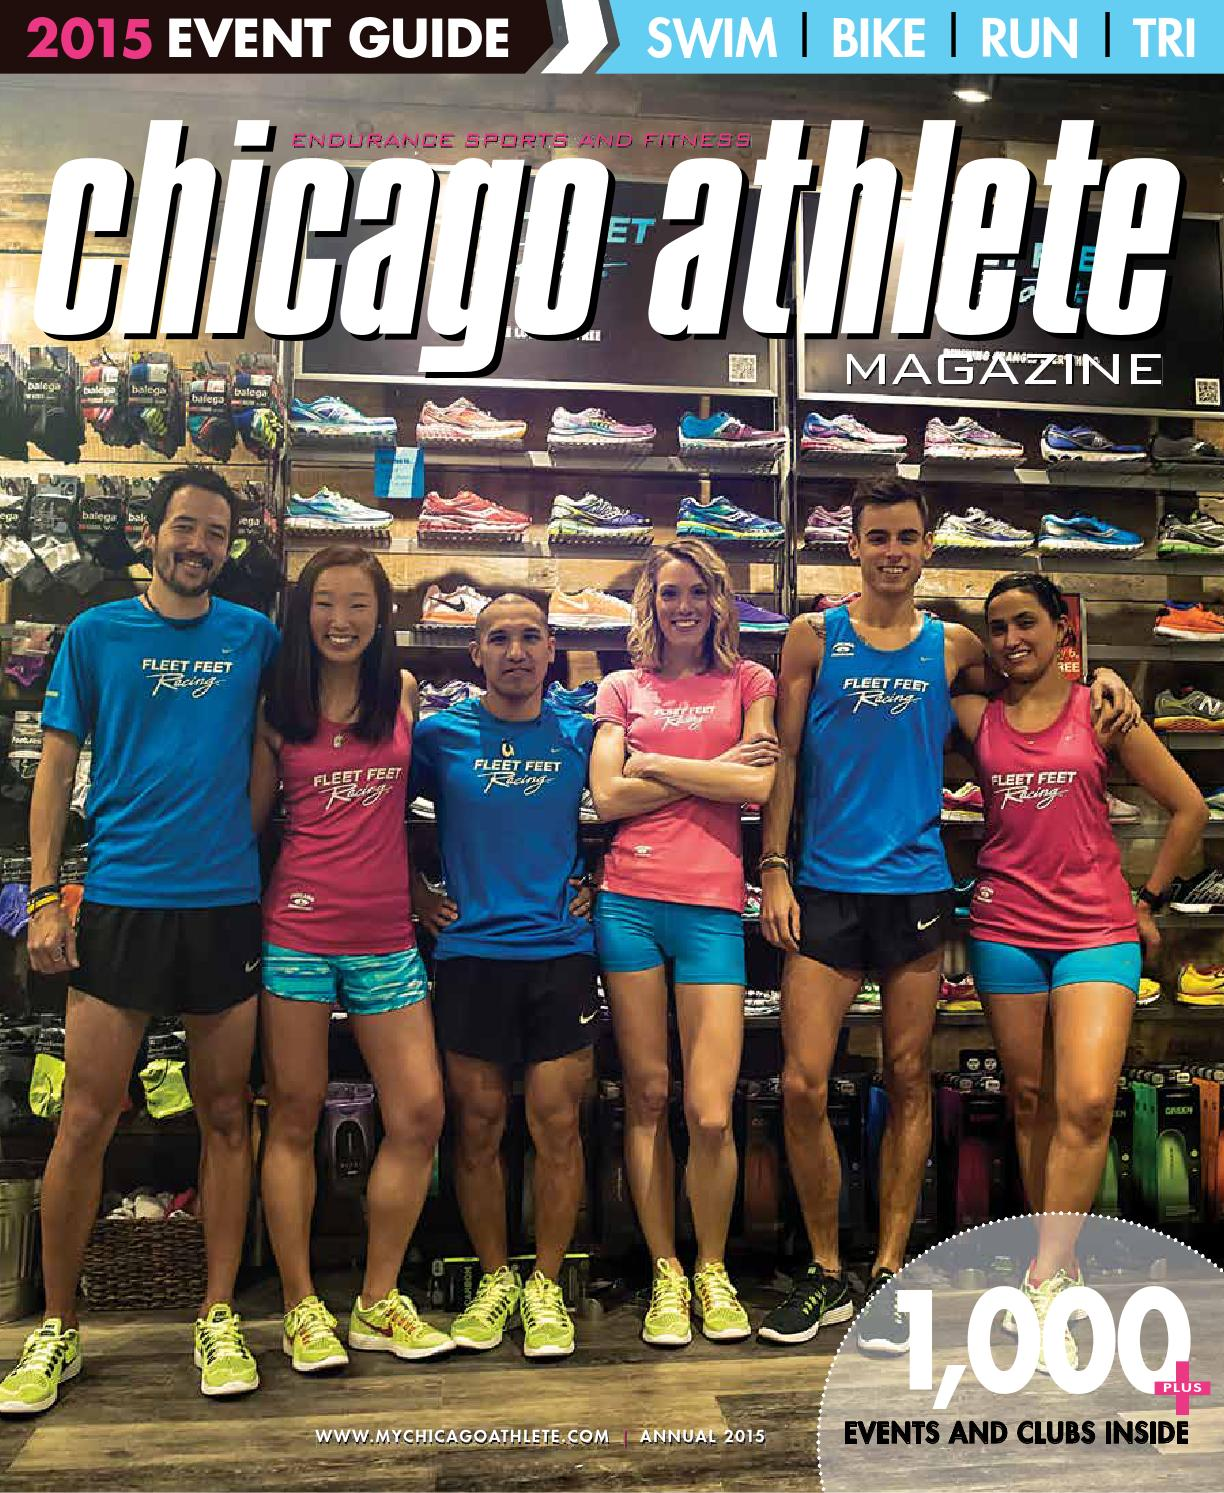 Chicago athlete magazine 2015 annual event guide by kelli l issuu.